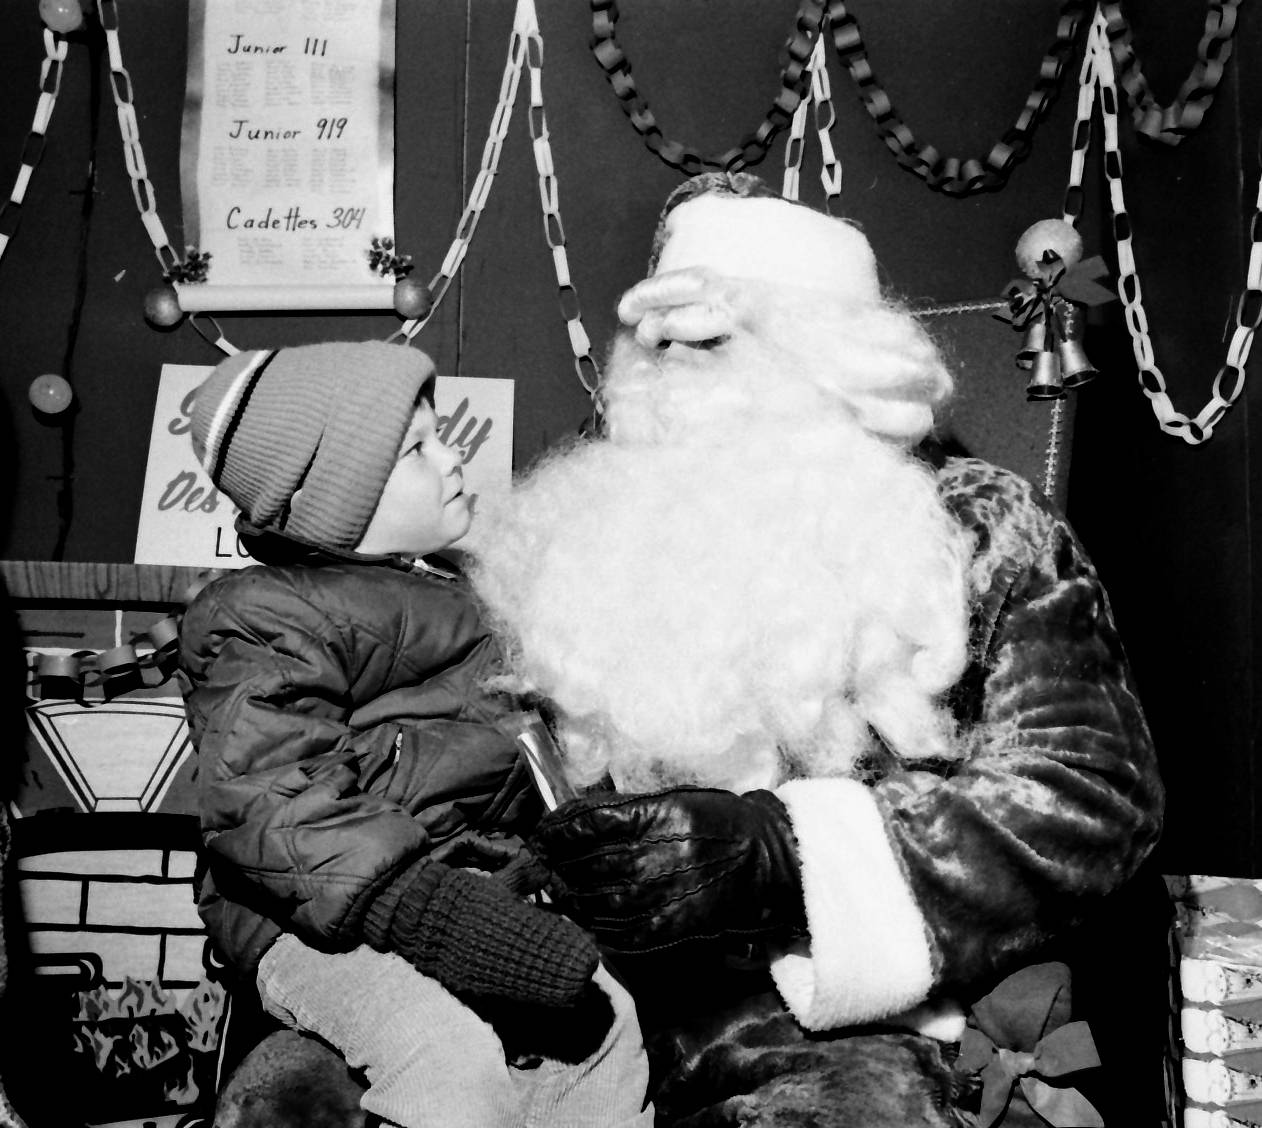 Santa visits Des Plaines in December of 1972.